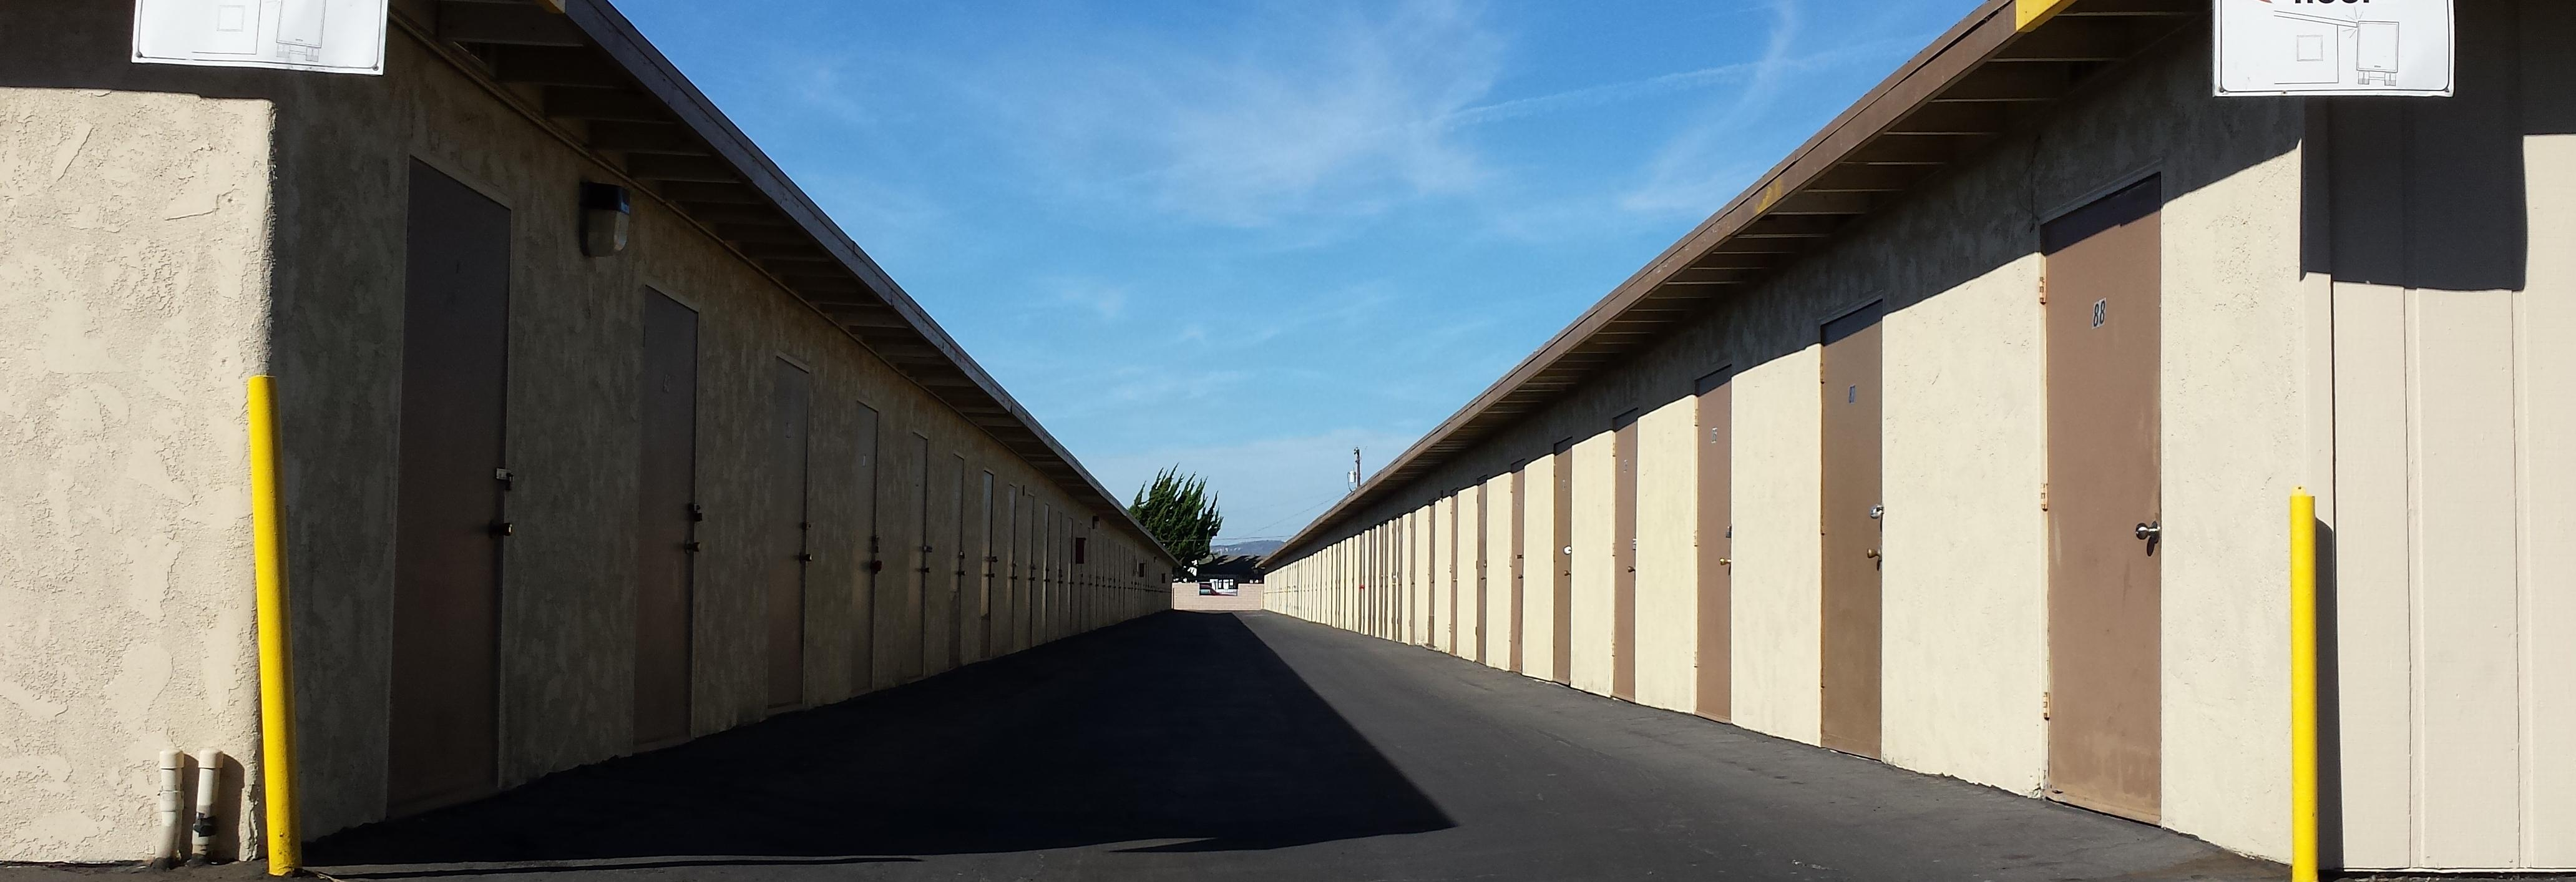 FORT STORAGE In Lompoc, CA   Local Coupons August 31, 2018